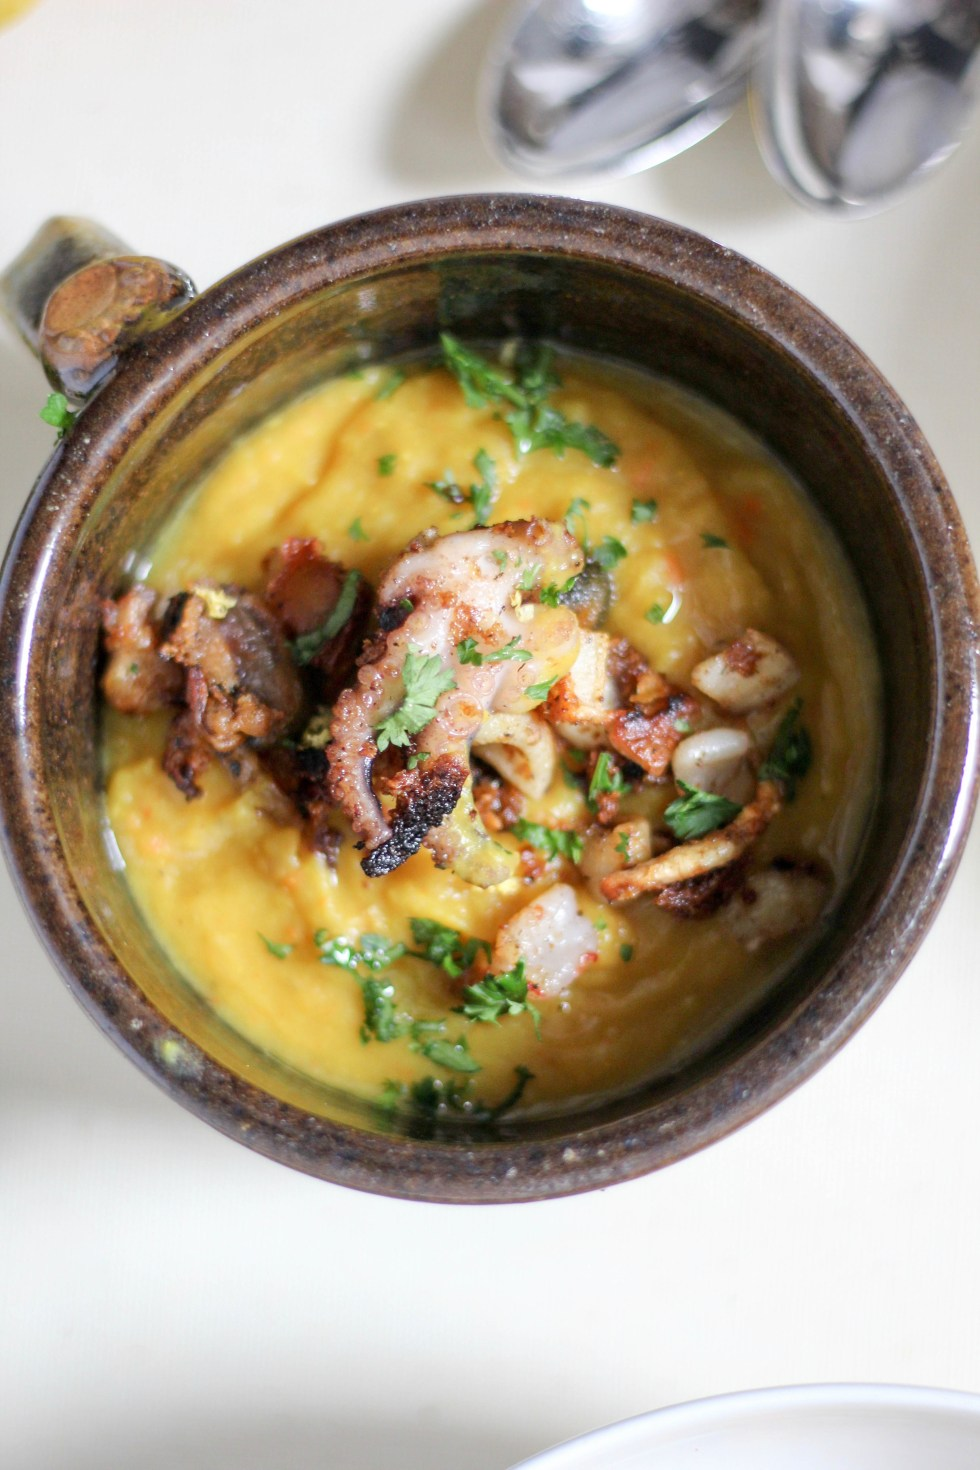 Creamy turmeric split pea seafood chowder for the cool winter months | POP KITCHEN